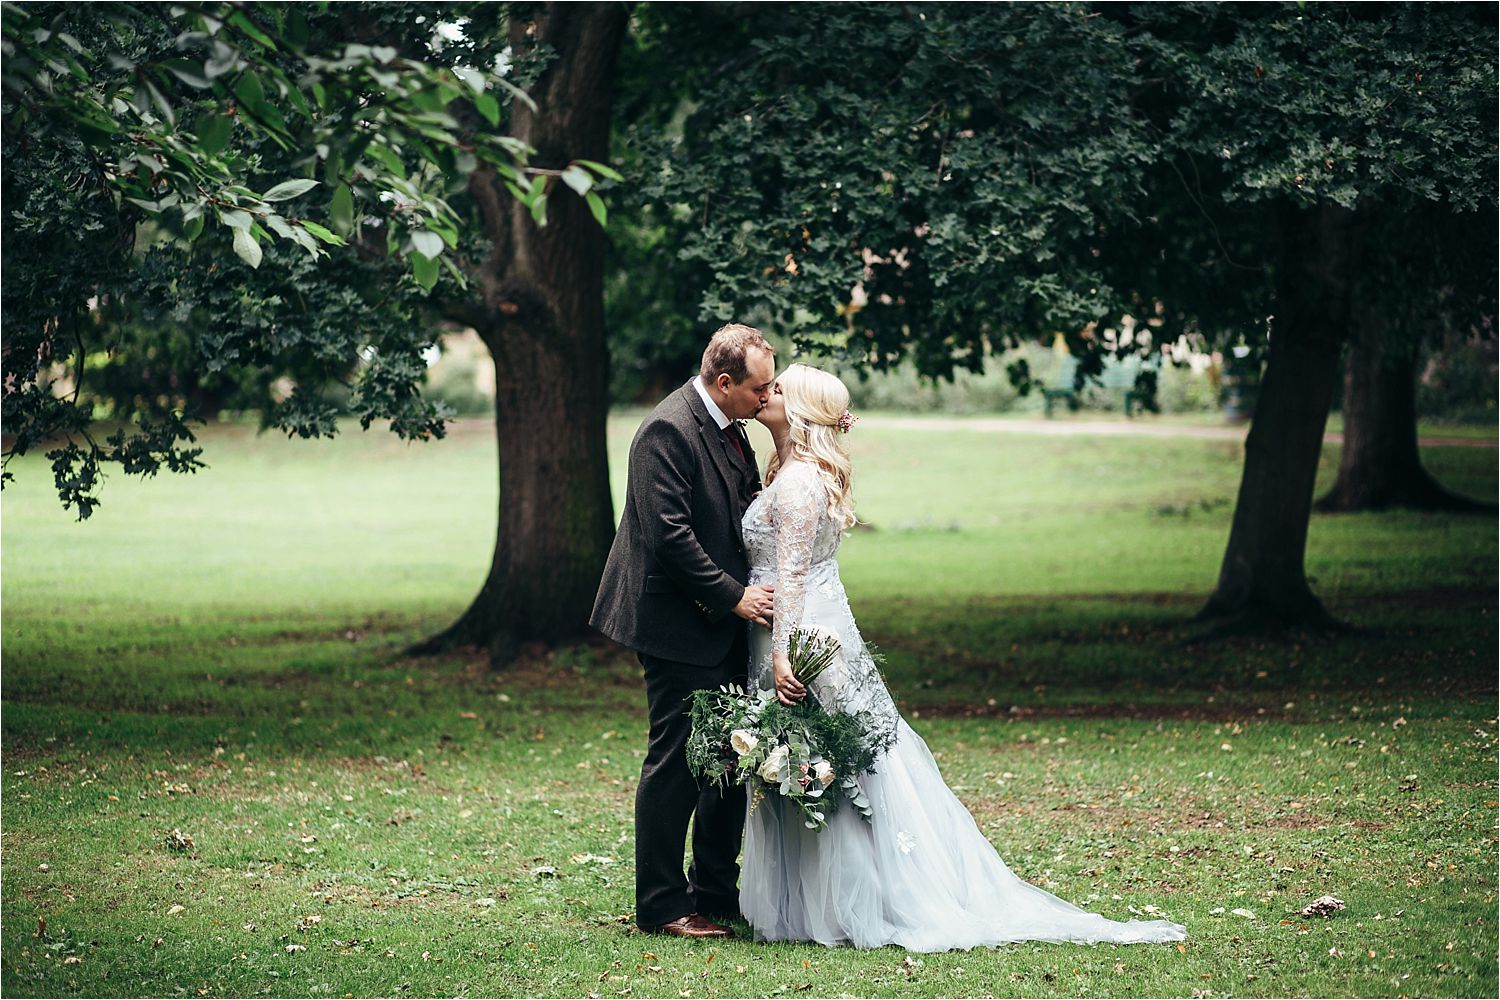 Bride and groom kissing at Bedfordshire wedding. Bride's dress by Soon Bride